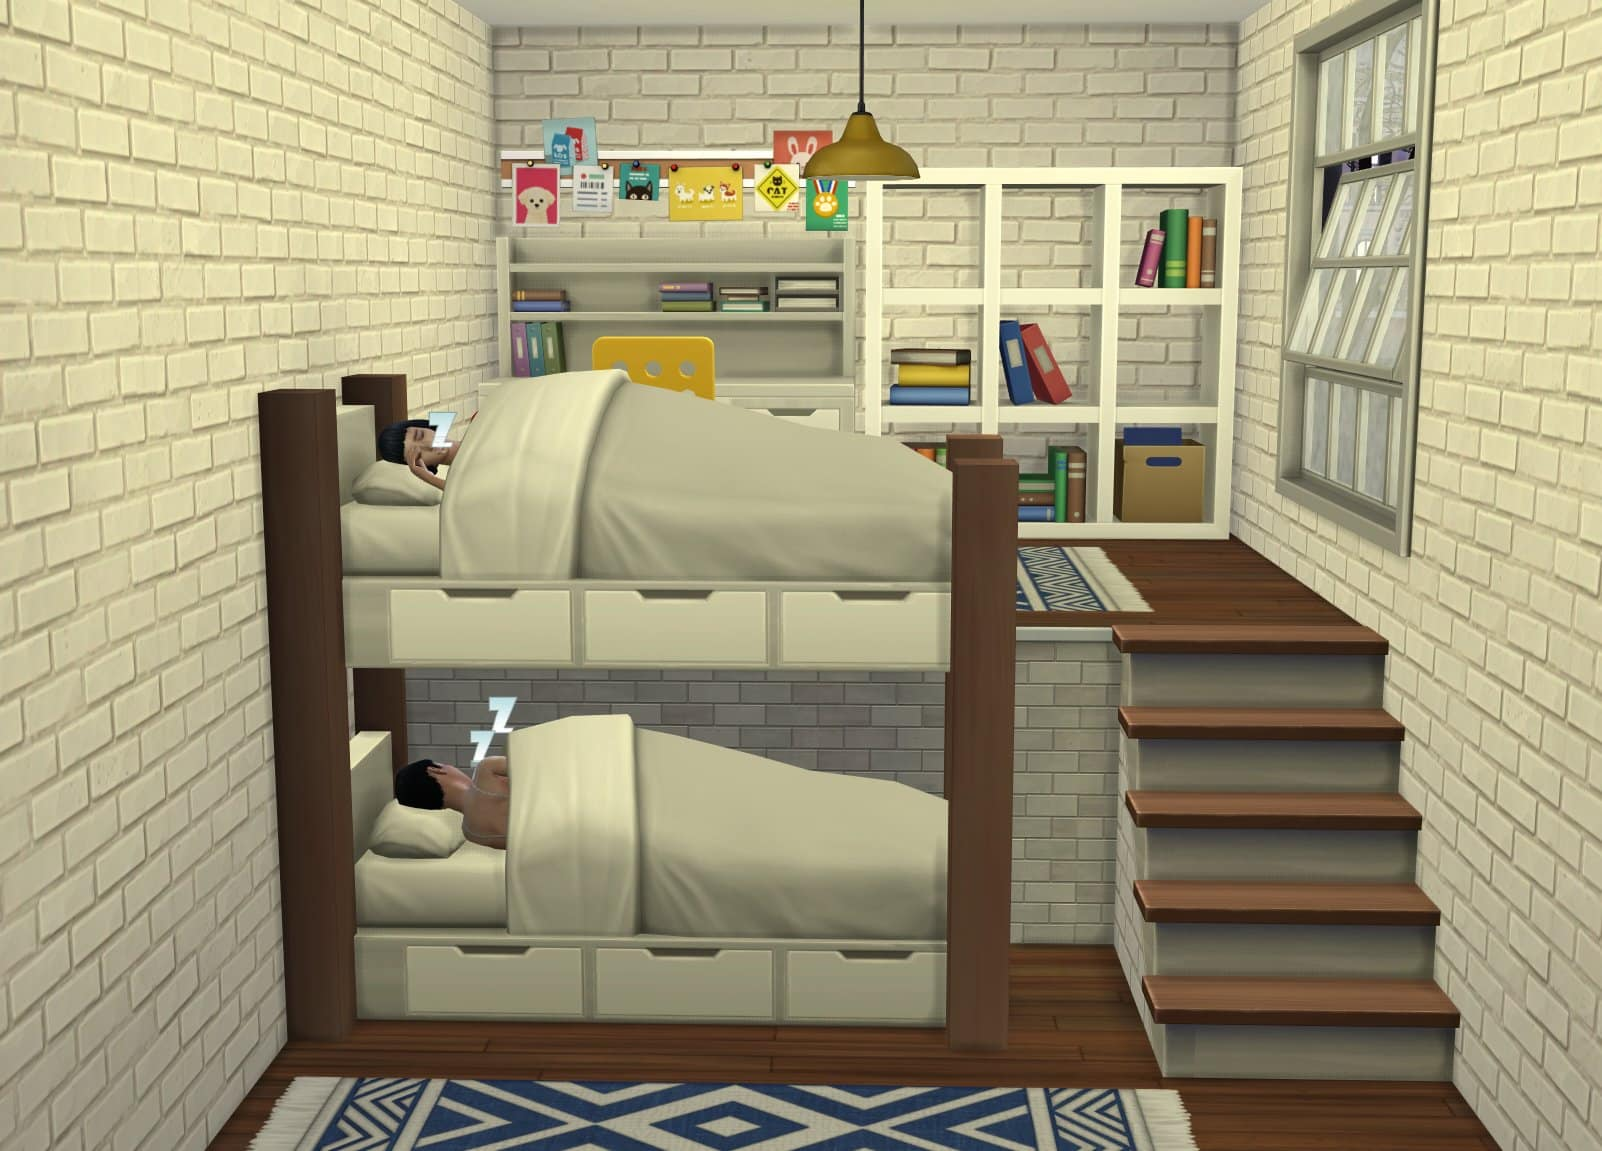 Simmers Share Their Creative Use Of Platforms In The Sims 4